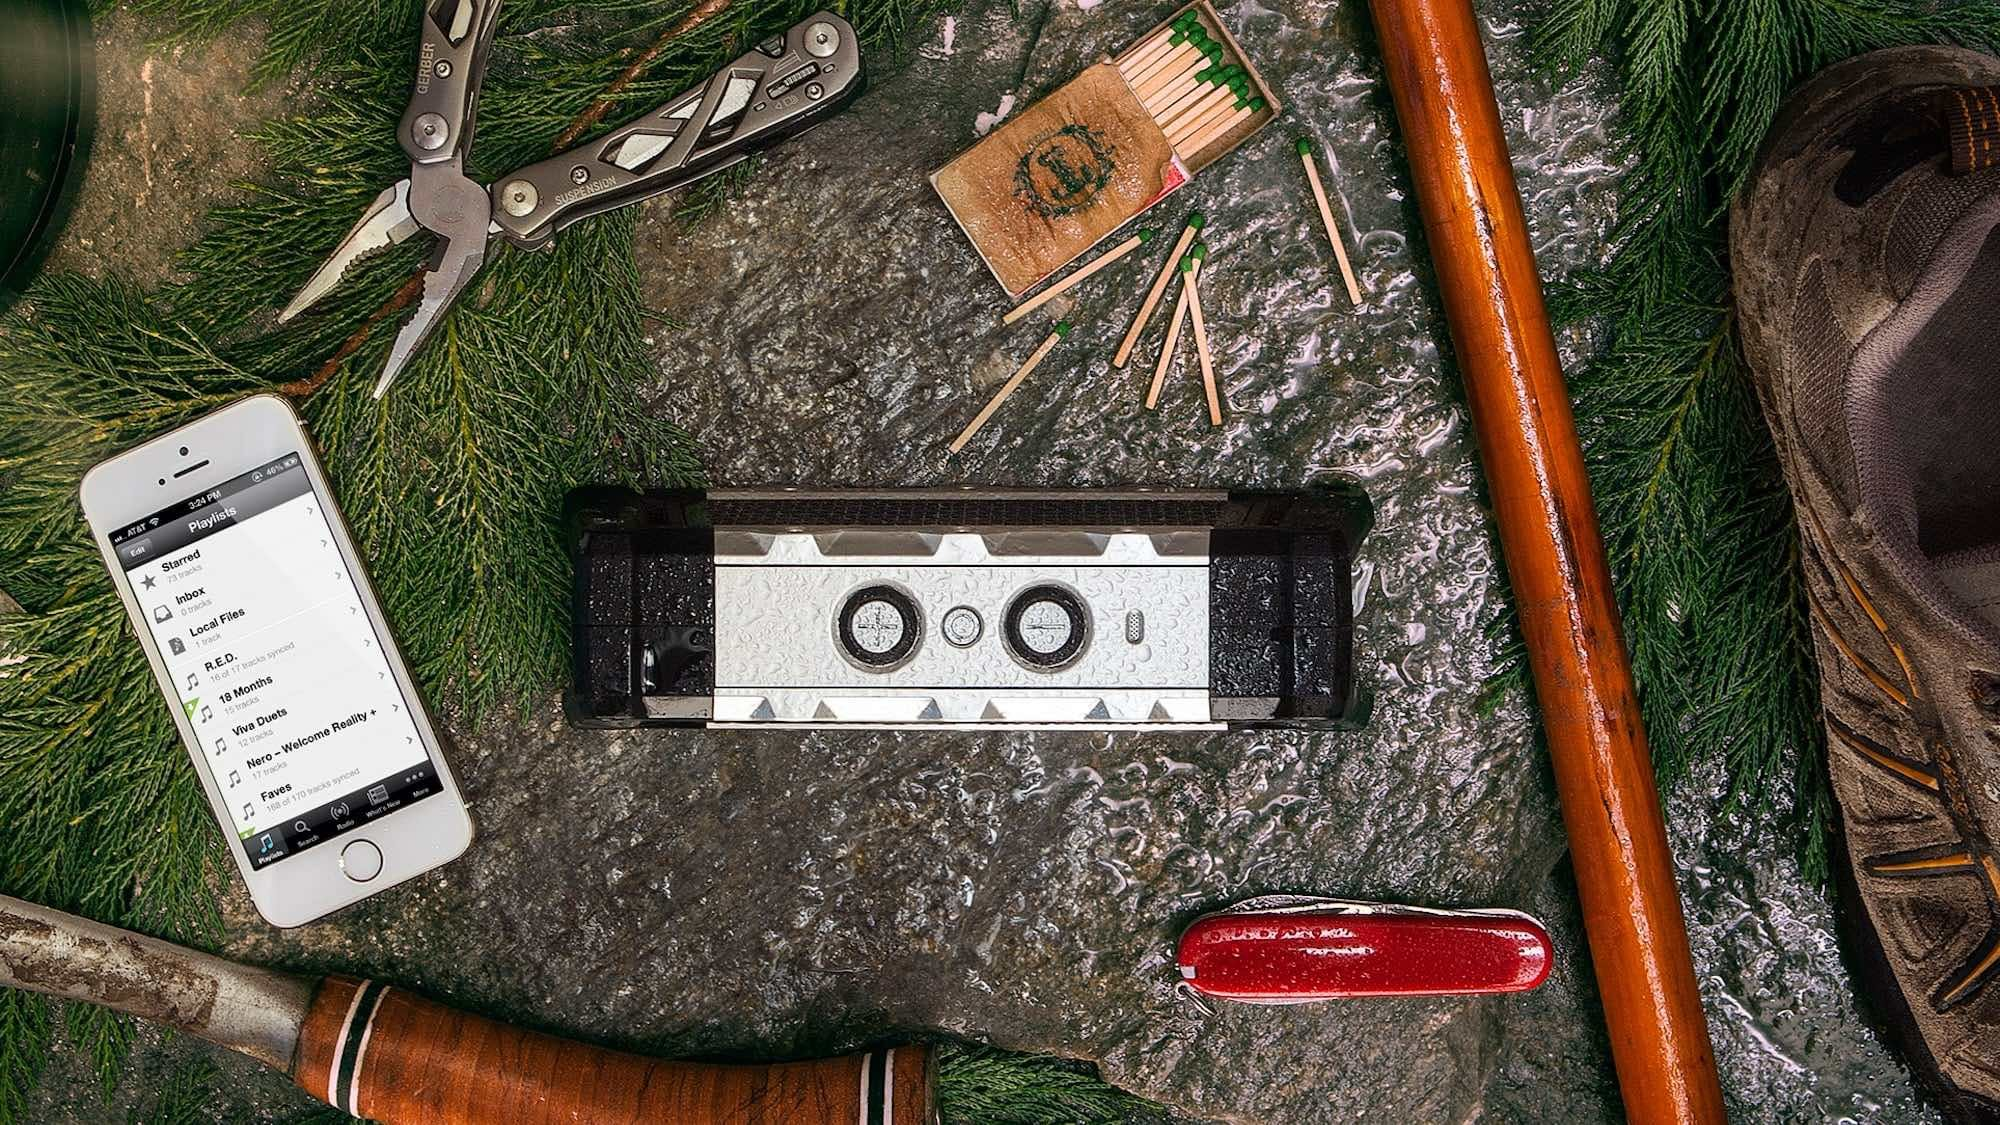 Fugoo Tough 2.0 rugged waterproof speaker is built to withstand extreme conditions